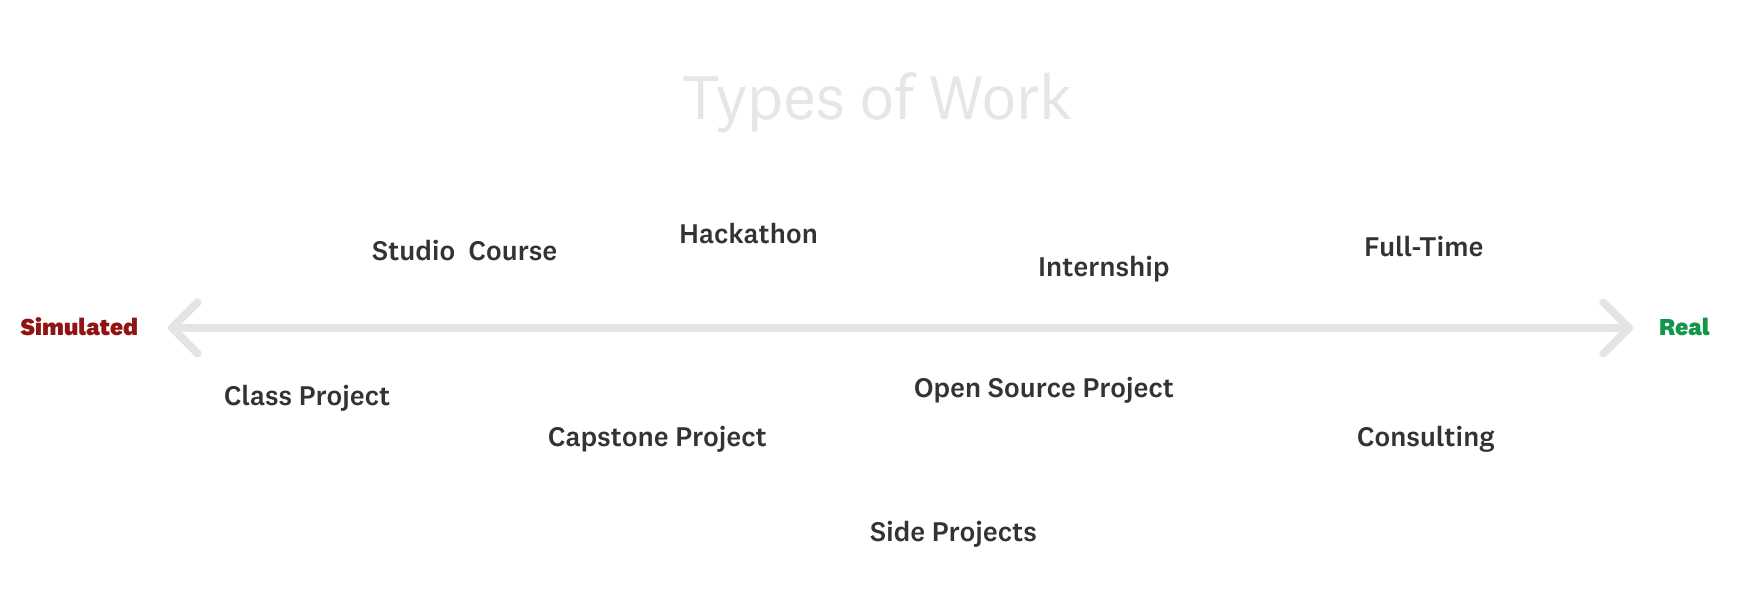 Where in this spectrum do your projects fall?